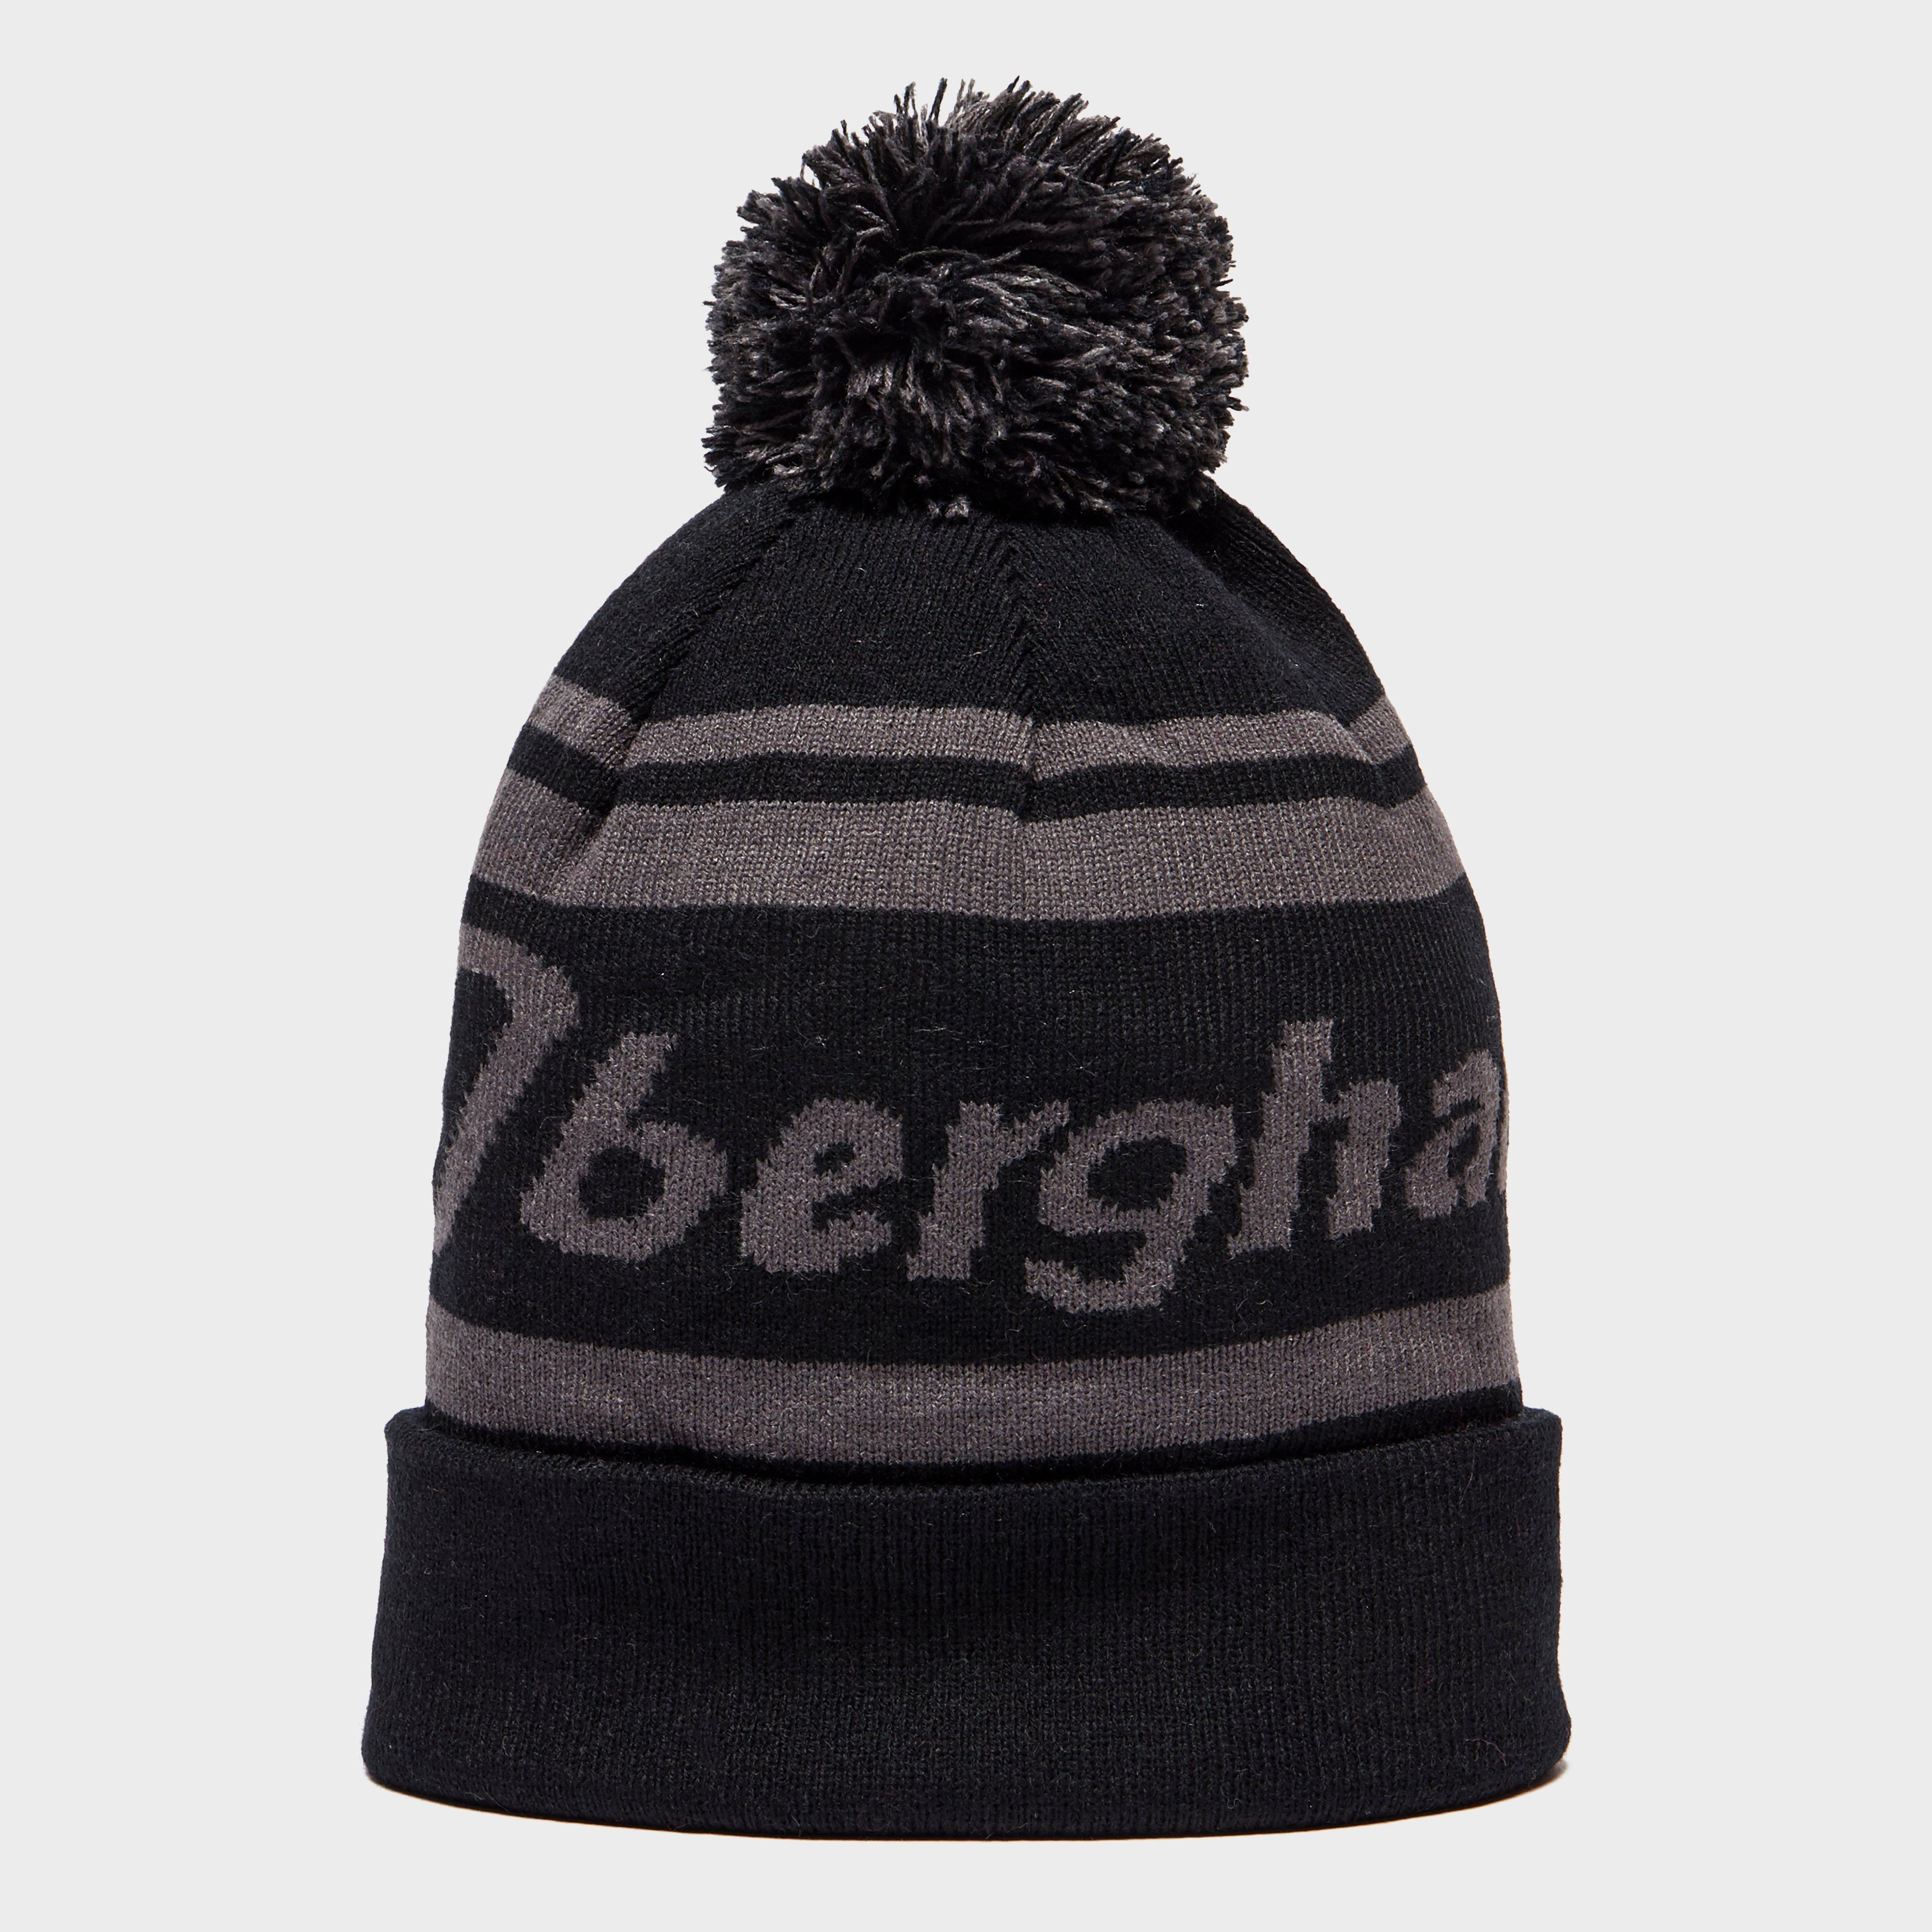 Details about New Berghaus Men s Berg Beanie Outdoors Winter Hat Comfort cf9a6518af8